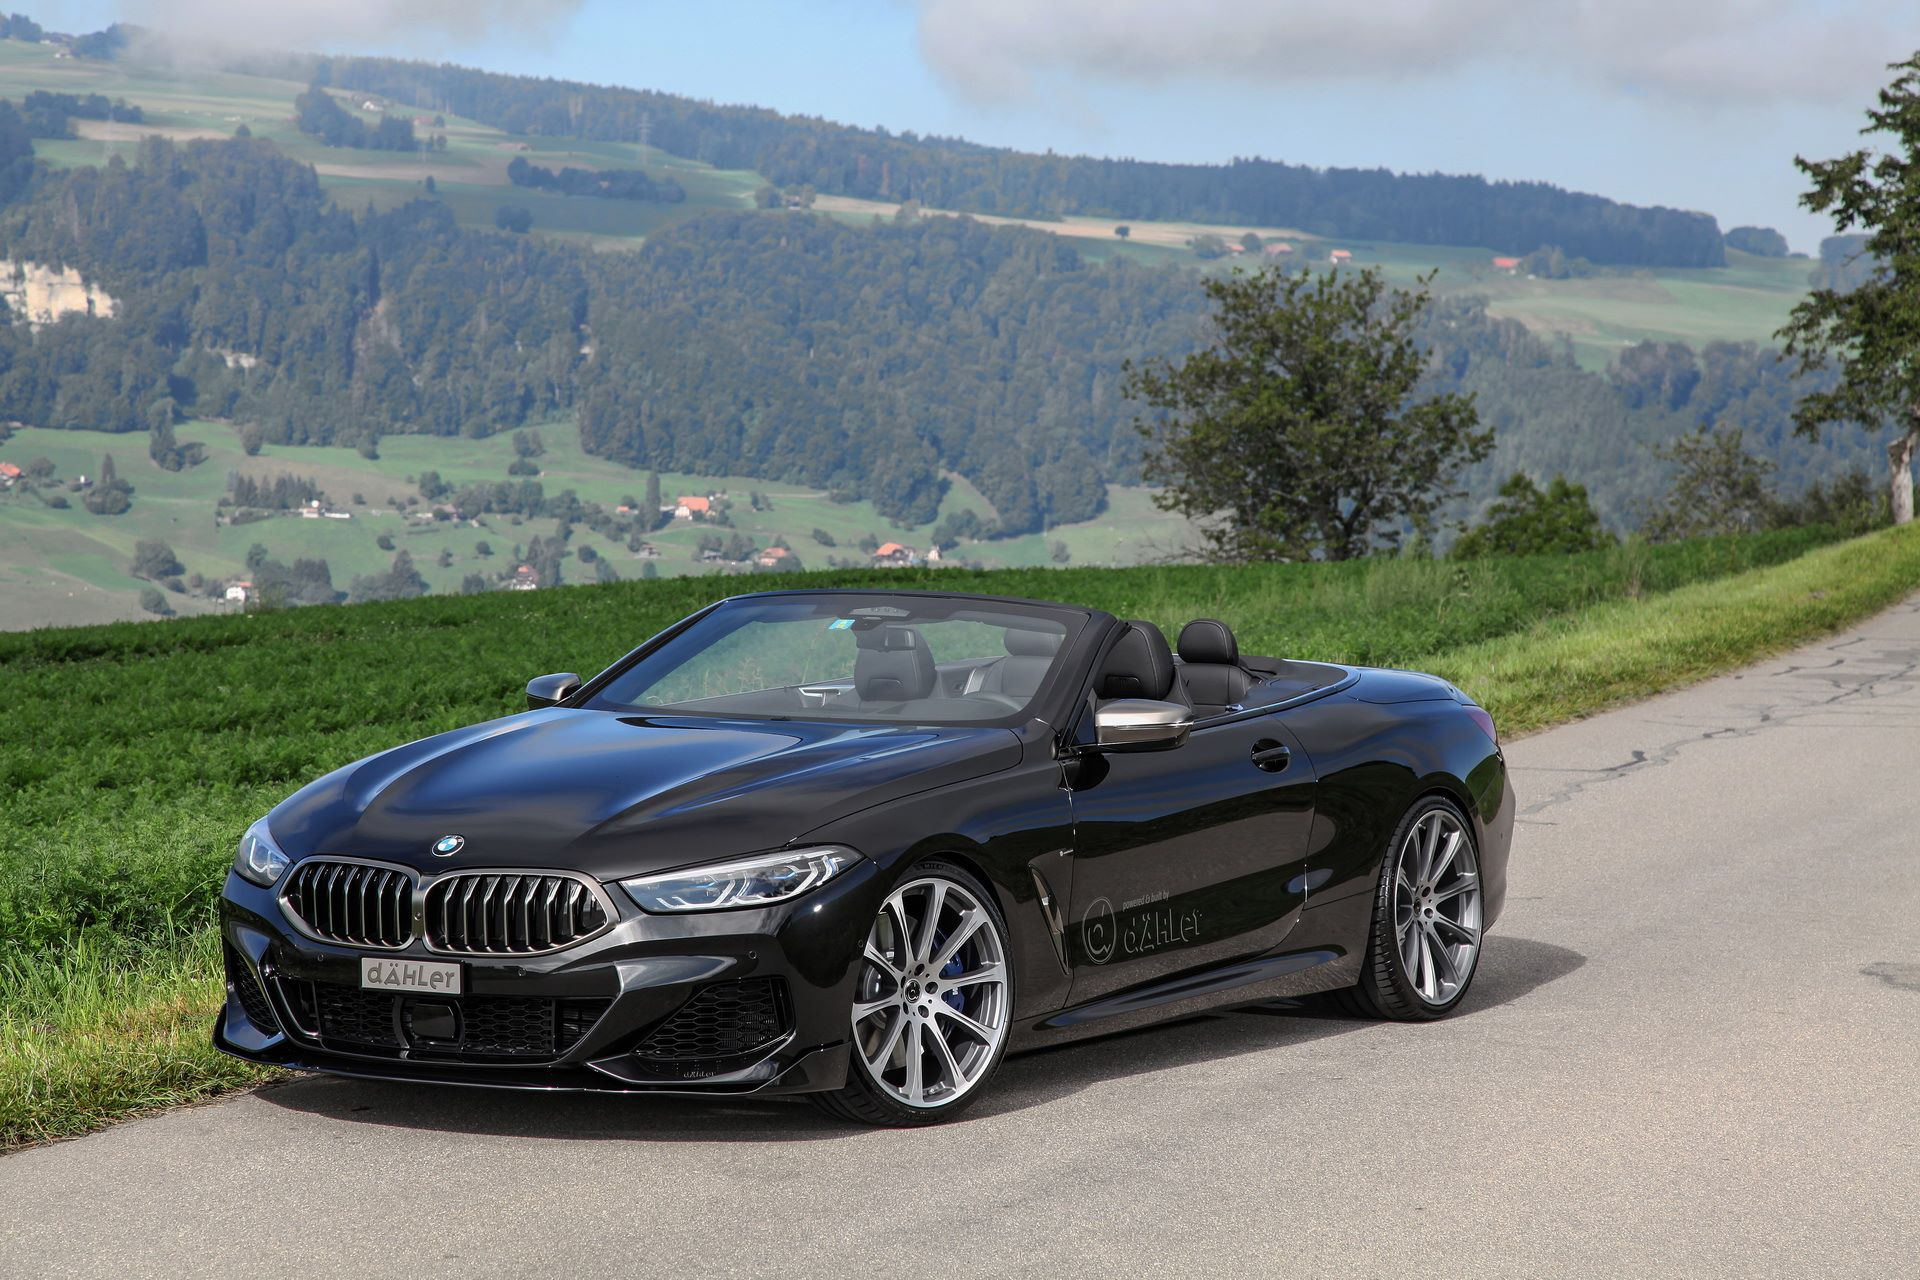 BMW-M850i-convertible-by-Dahler-2